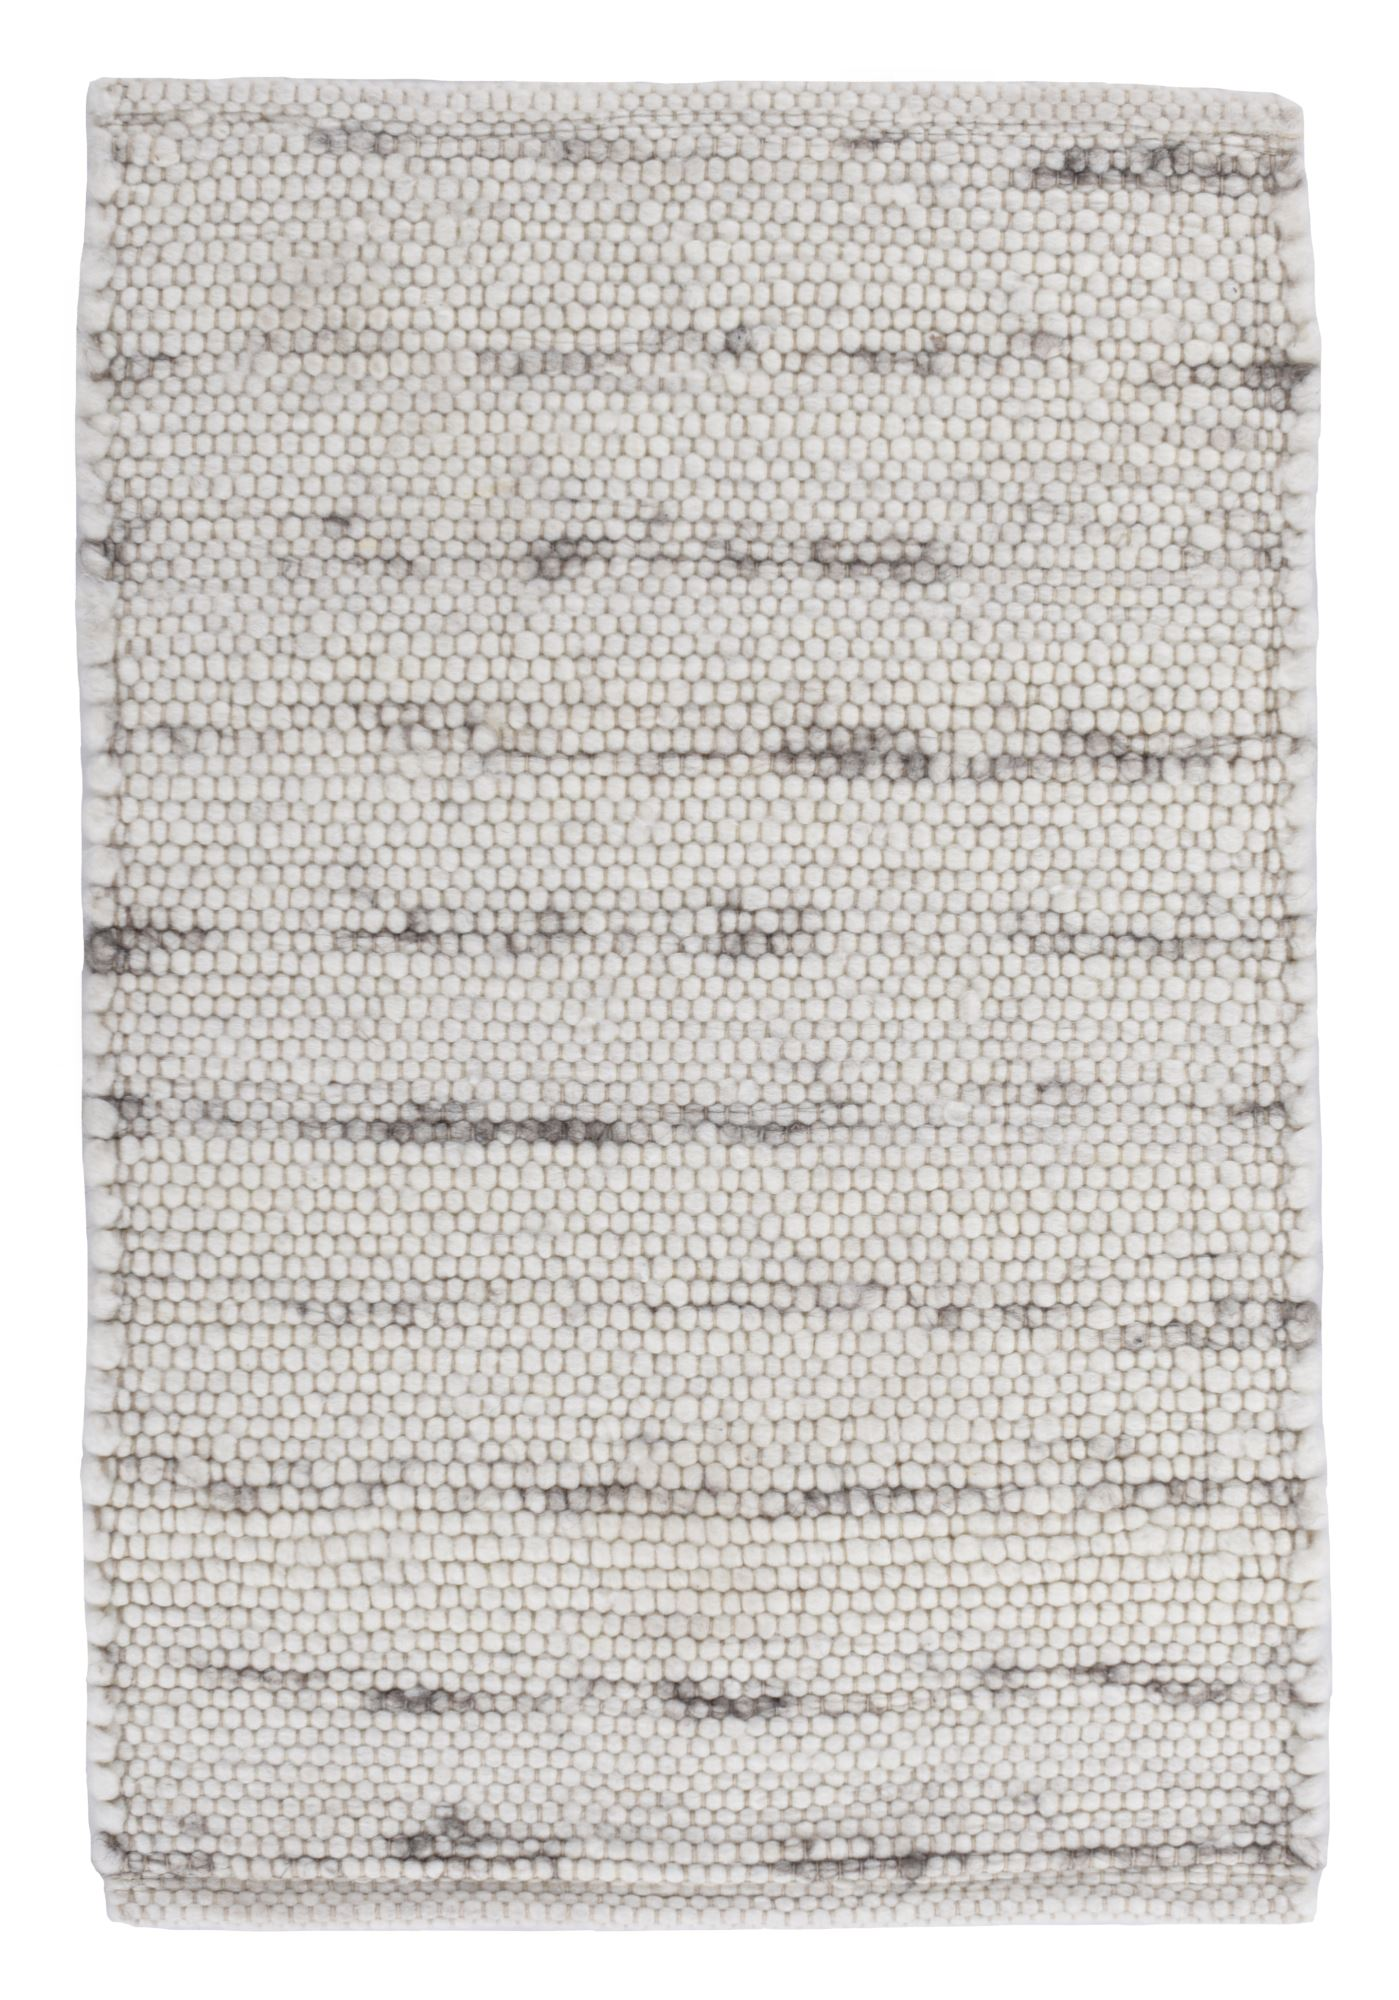 Tapis tissé à la main en laine naturelle natural grey 120x180